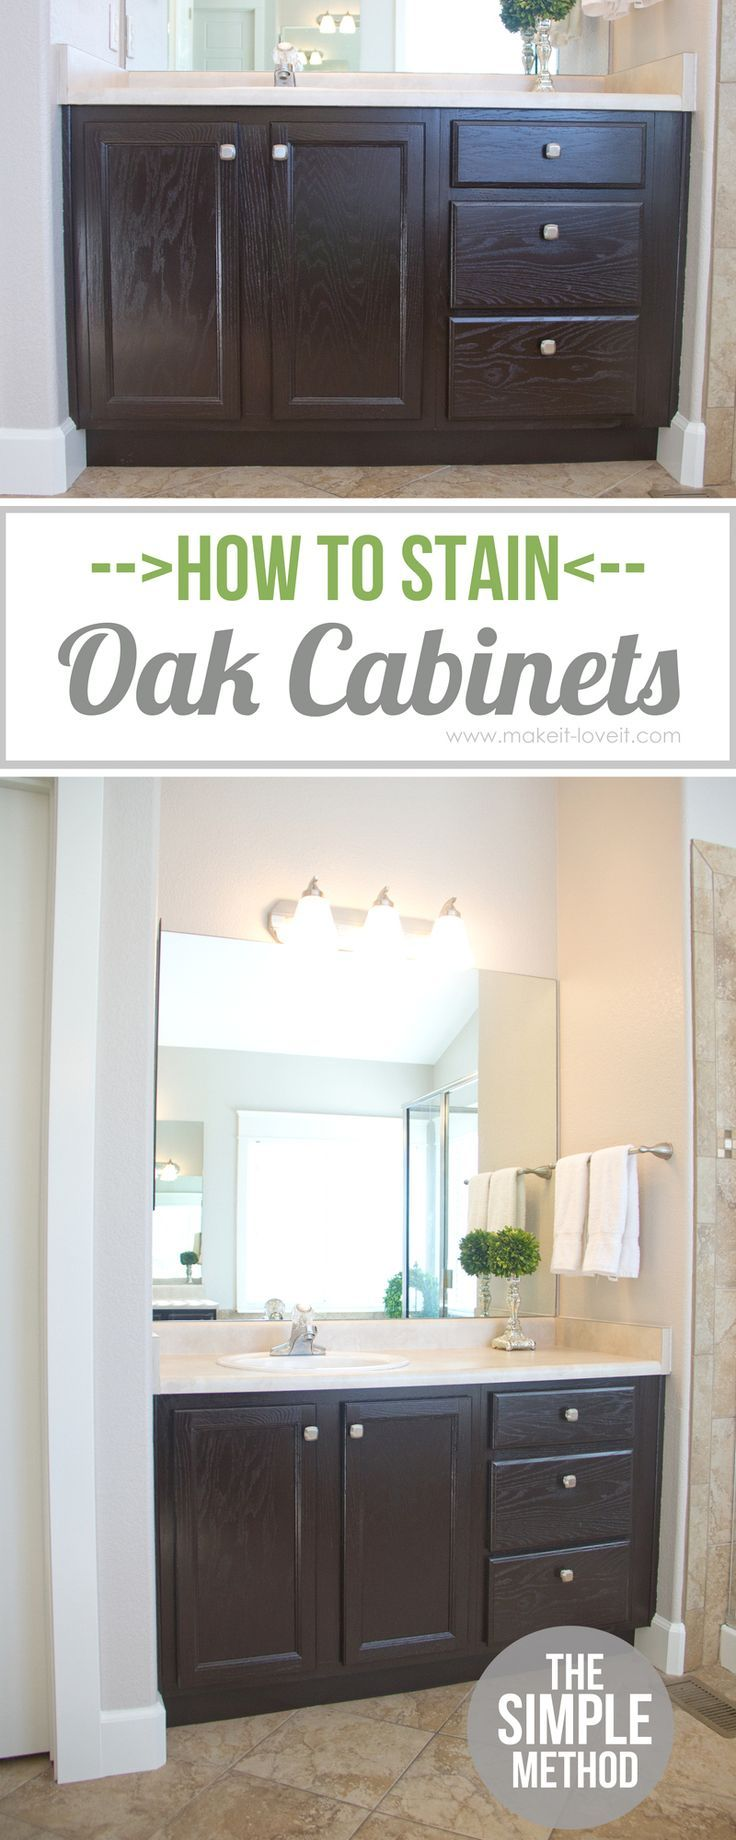 How to stain oak cabinetse simple method without sanding